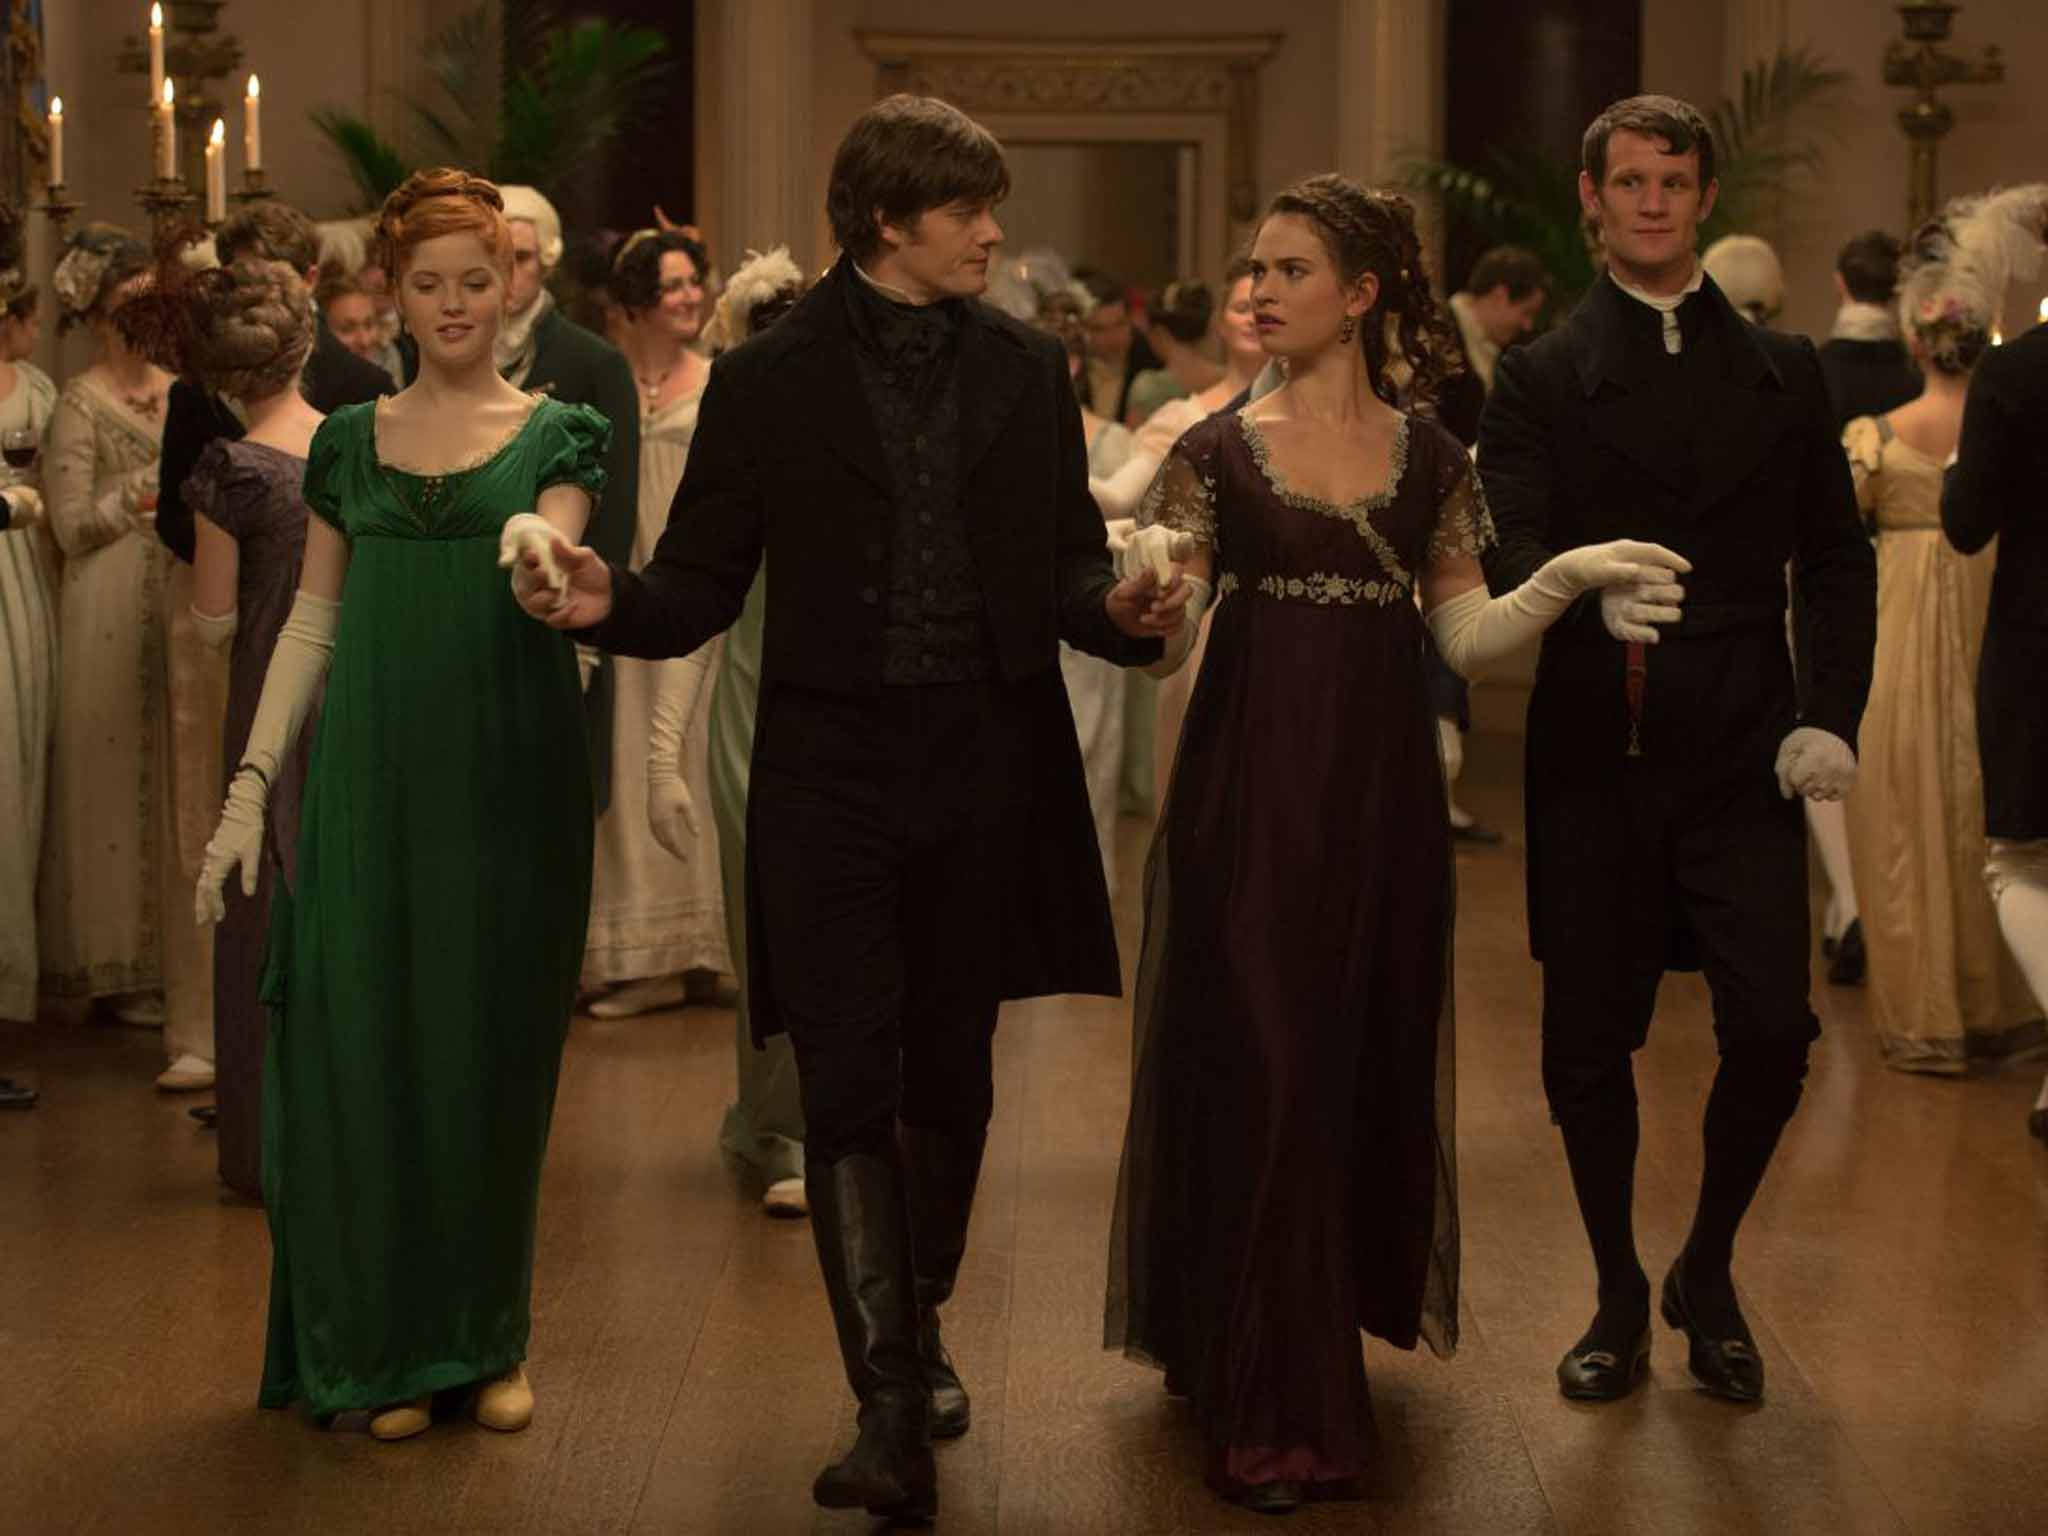 pride and prejudice and zombies sam riley on why jane austen pride and prejudice and zombies sam riley on why jane austen would have loved it the